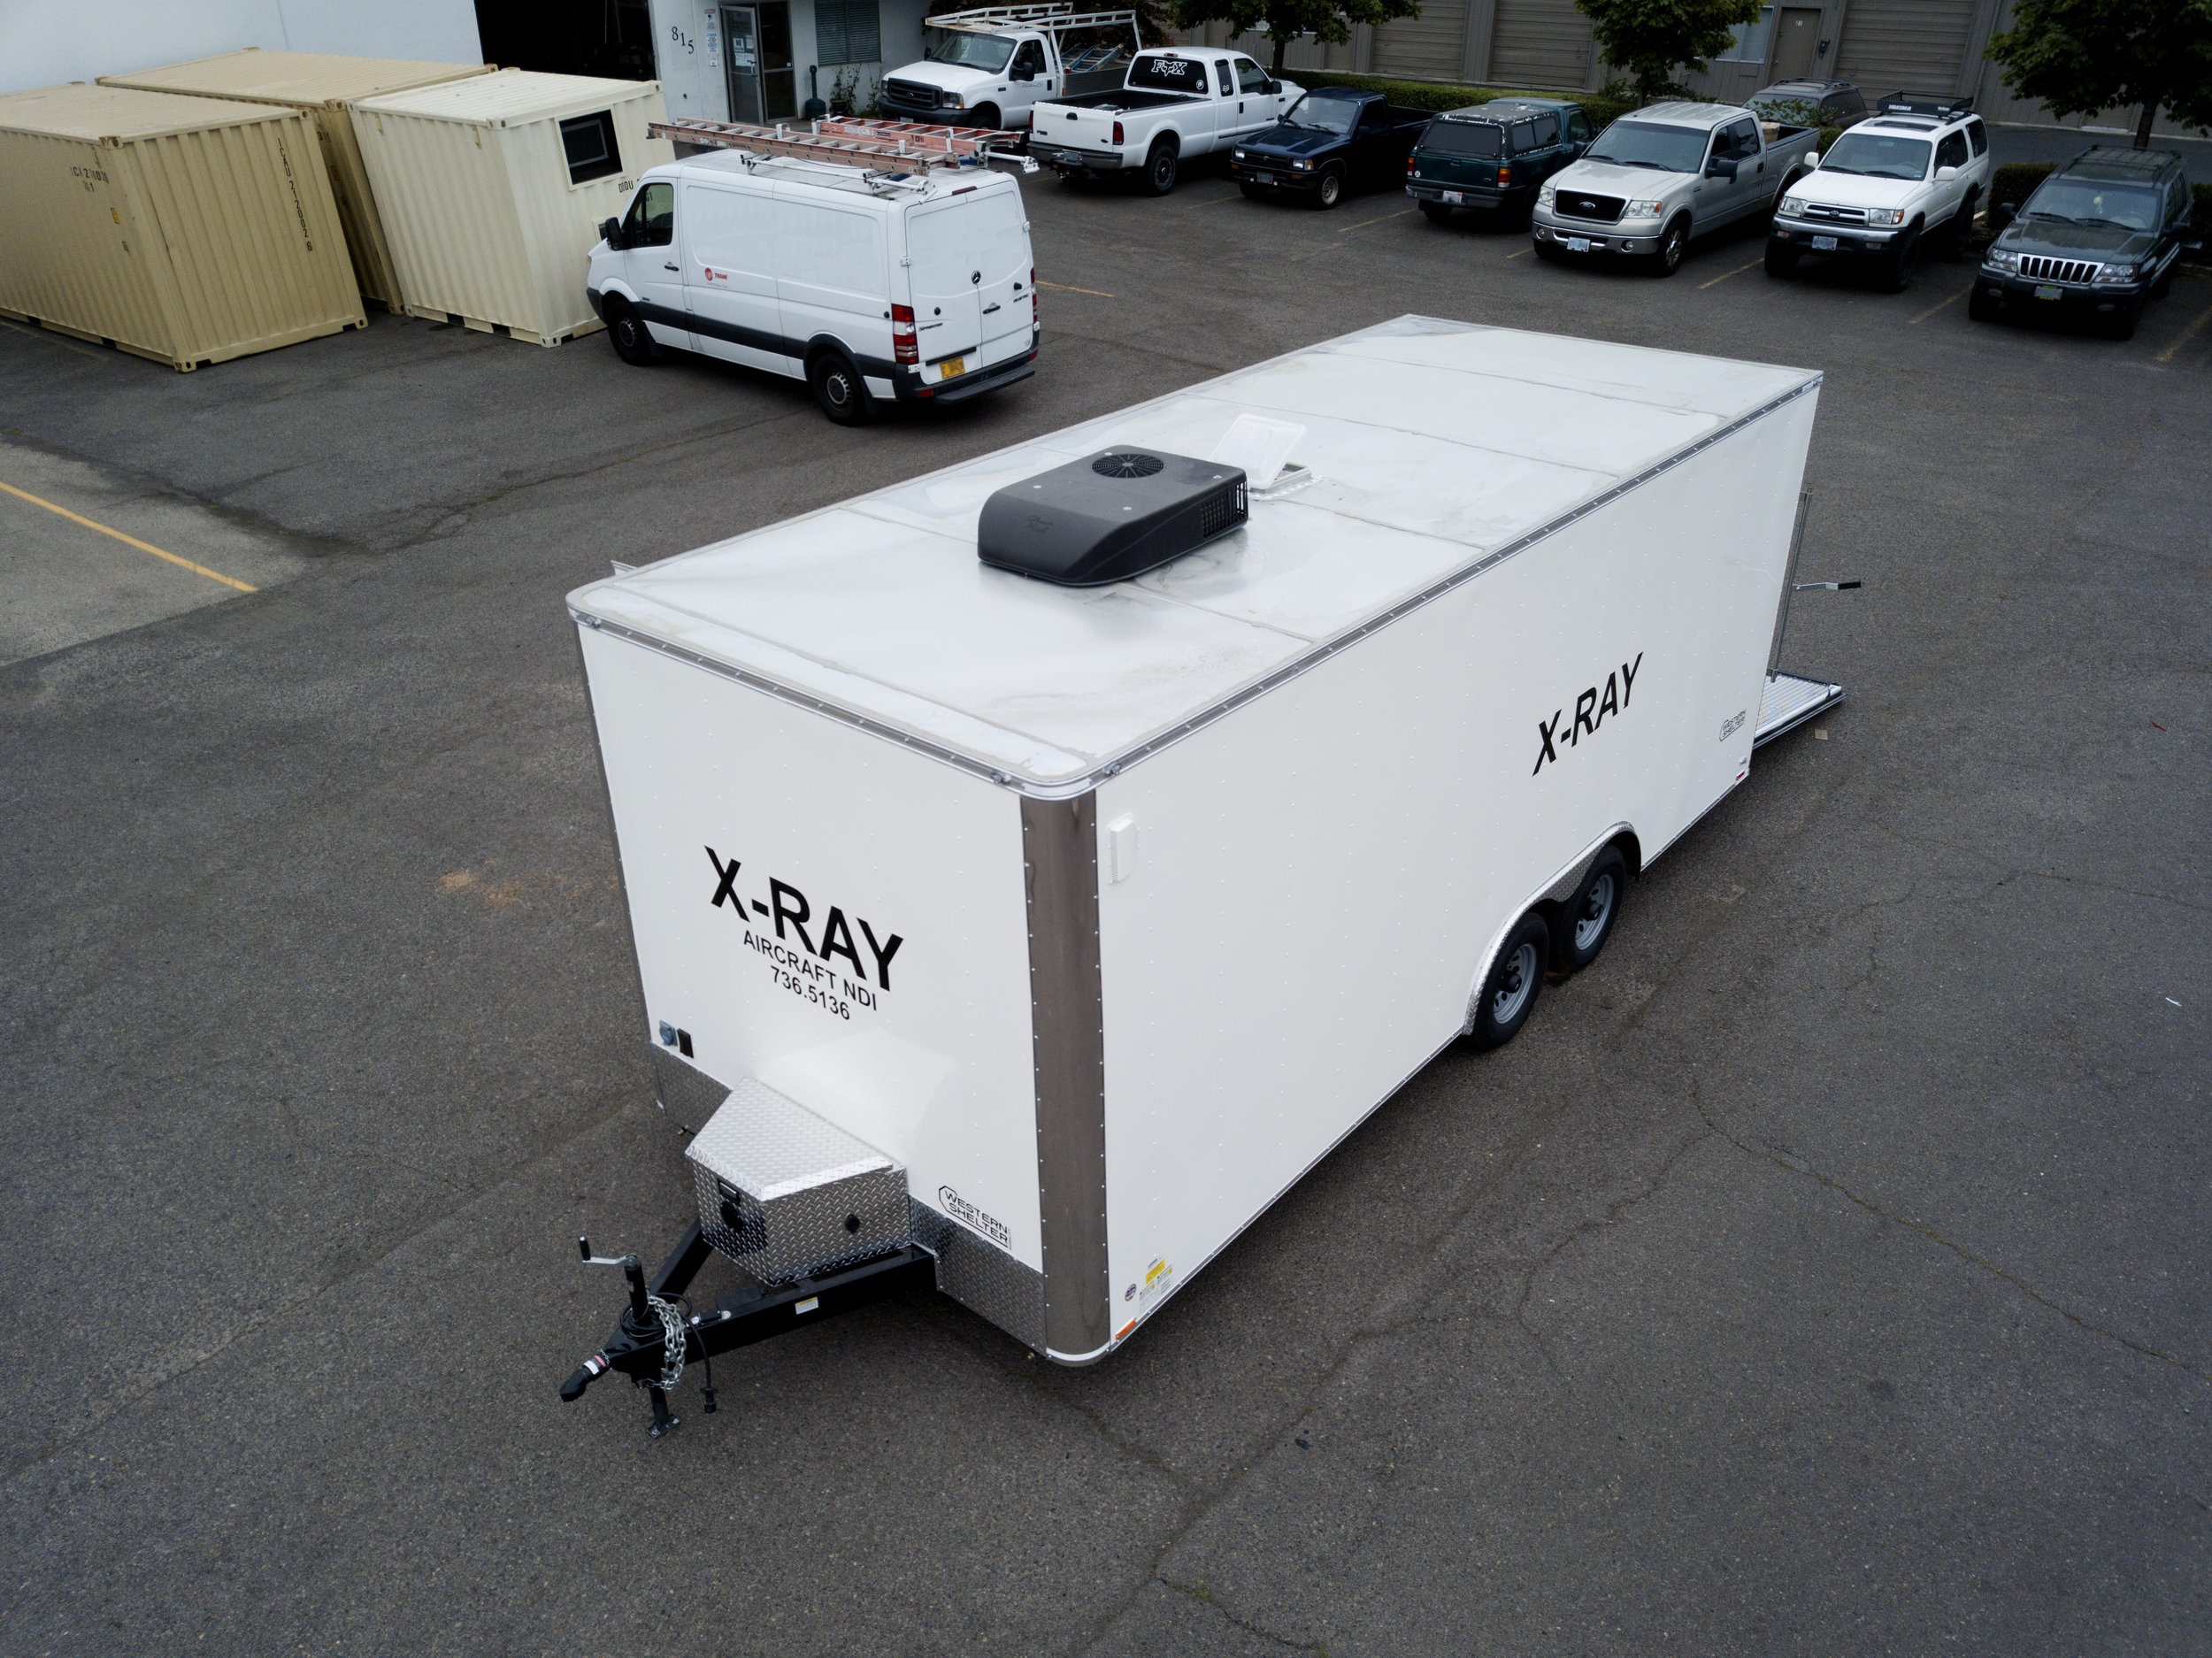 X-Ray+Trailer+from+above.jpg